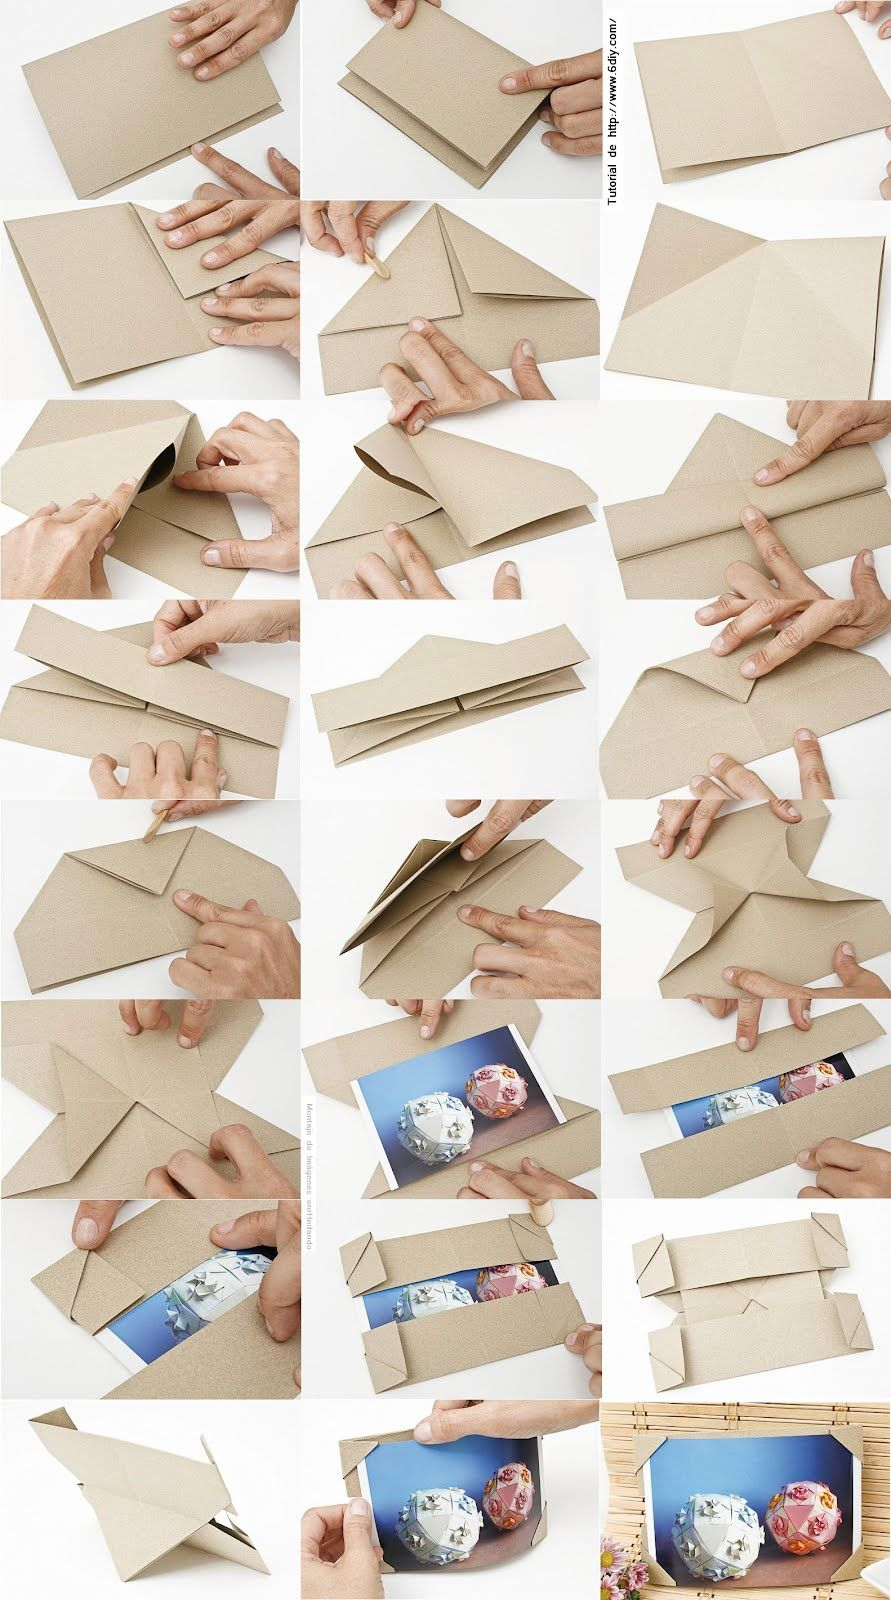 en-rHed-ando frame diy | Ideas | Pinterest | Origami, Craft and ...